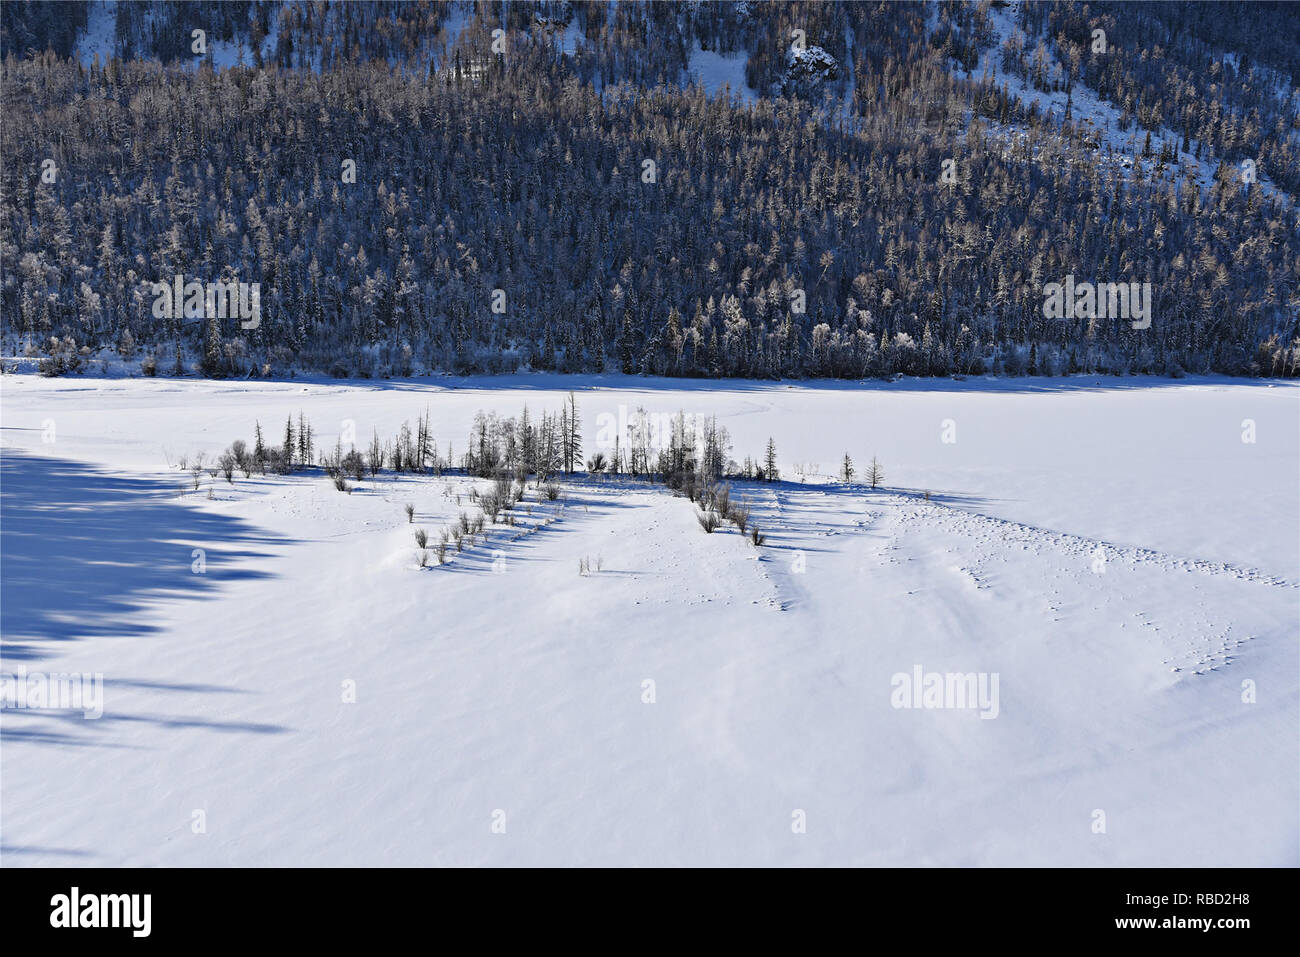 Xinjiang, Xinjiang, China. 9th Jan, 2019. Xinjiang, CHINA-Stunning winter scenery of Kanas Scenic Area in Xinjiang. Credit: SIPA Asia/ZUMA Wire/Alamy Live News Stock Photo